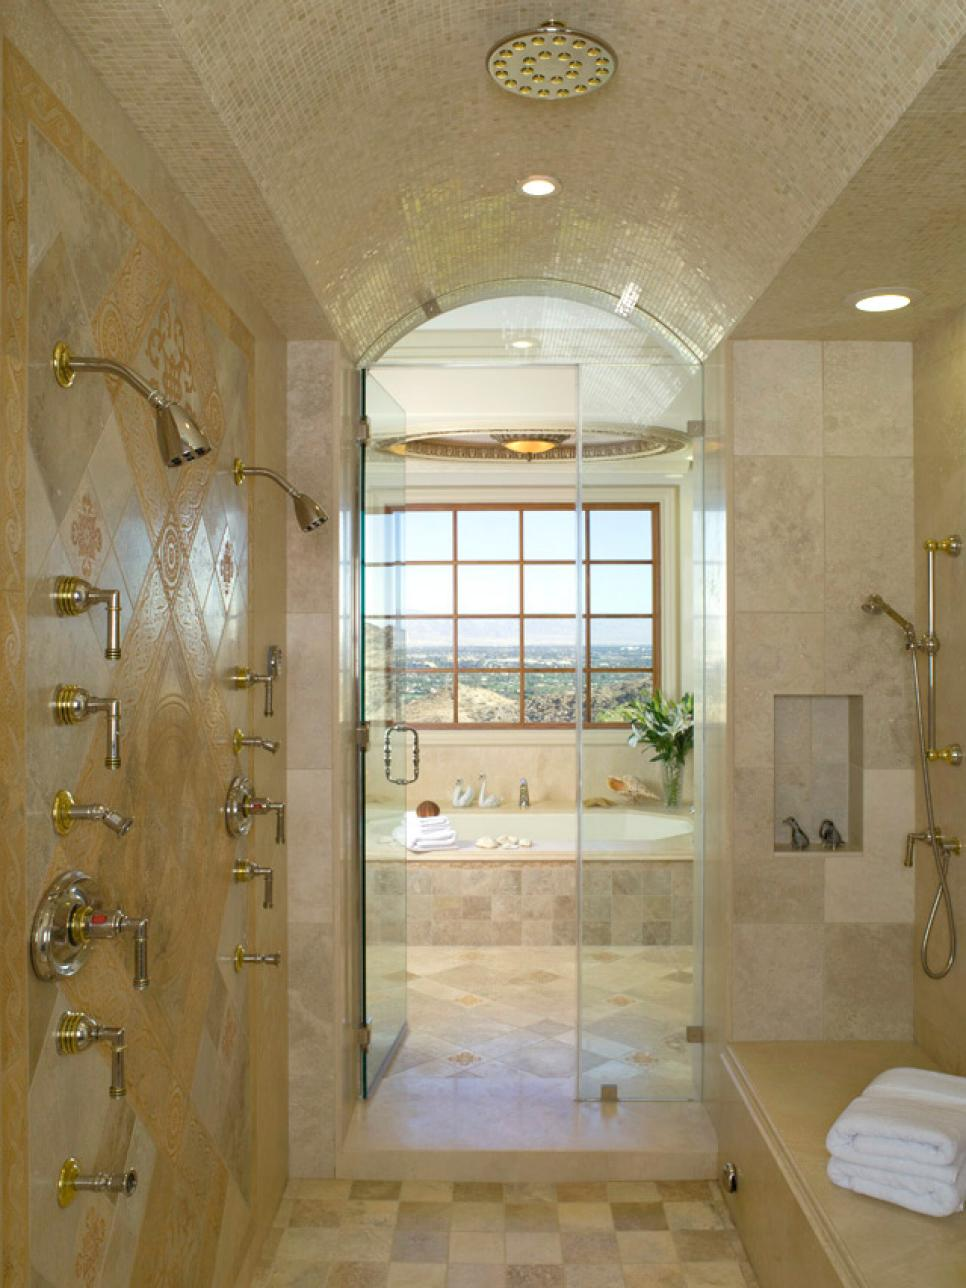 matt muensters 8 crazy bathroom remodeling ideas diy - Small Bathroom Remodeling Designs